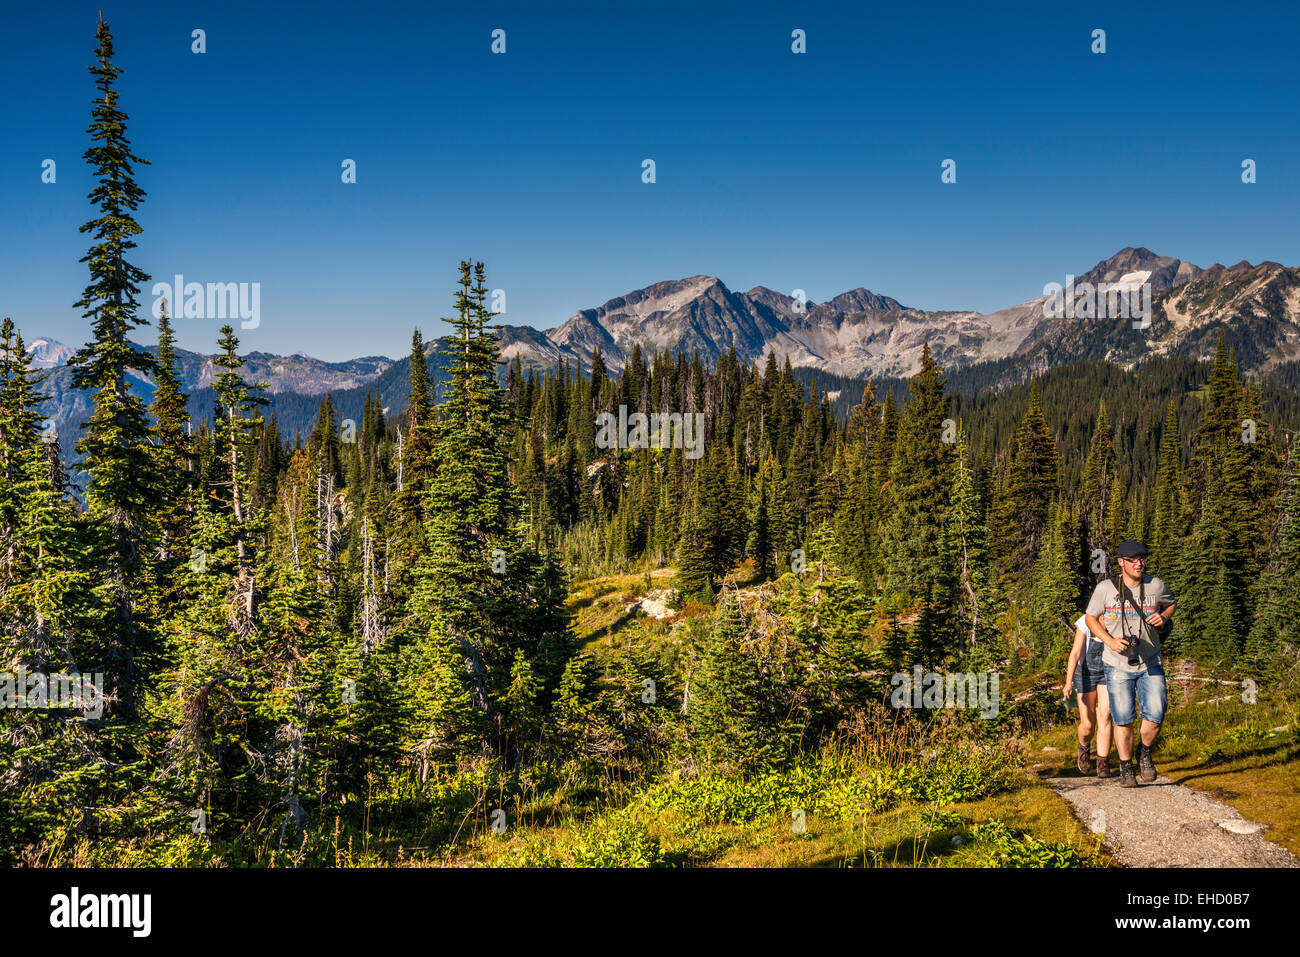 Selkirk Mountains, hikers on trail, view from South Parapet viewpoint in Mount Revelstoke Nat Park, British Columbia, - Stock Image